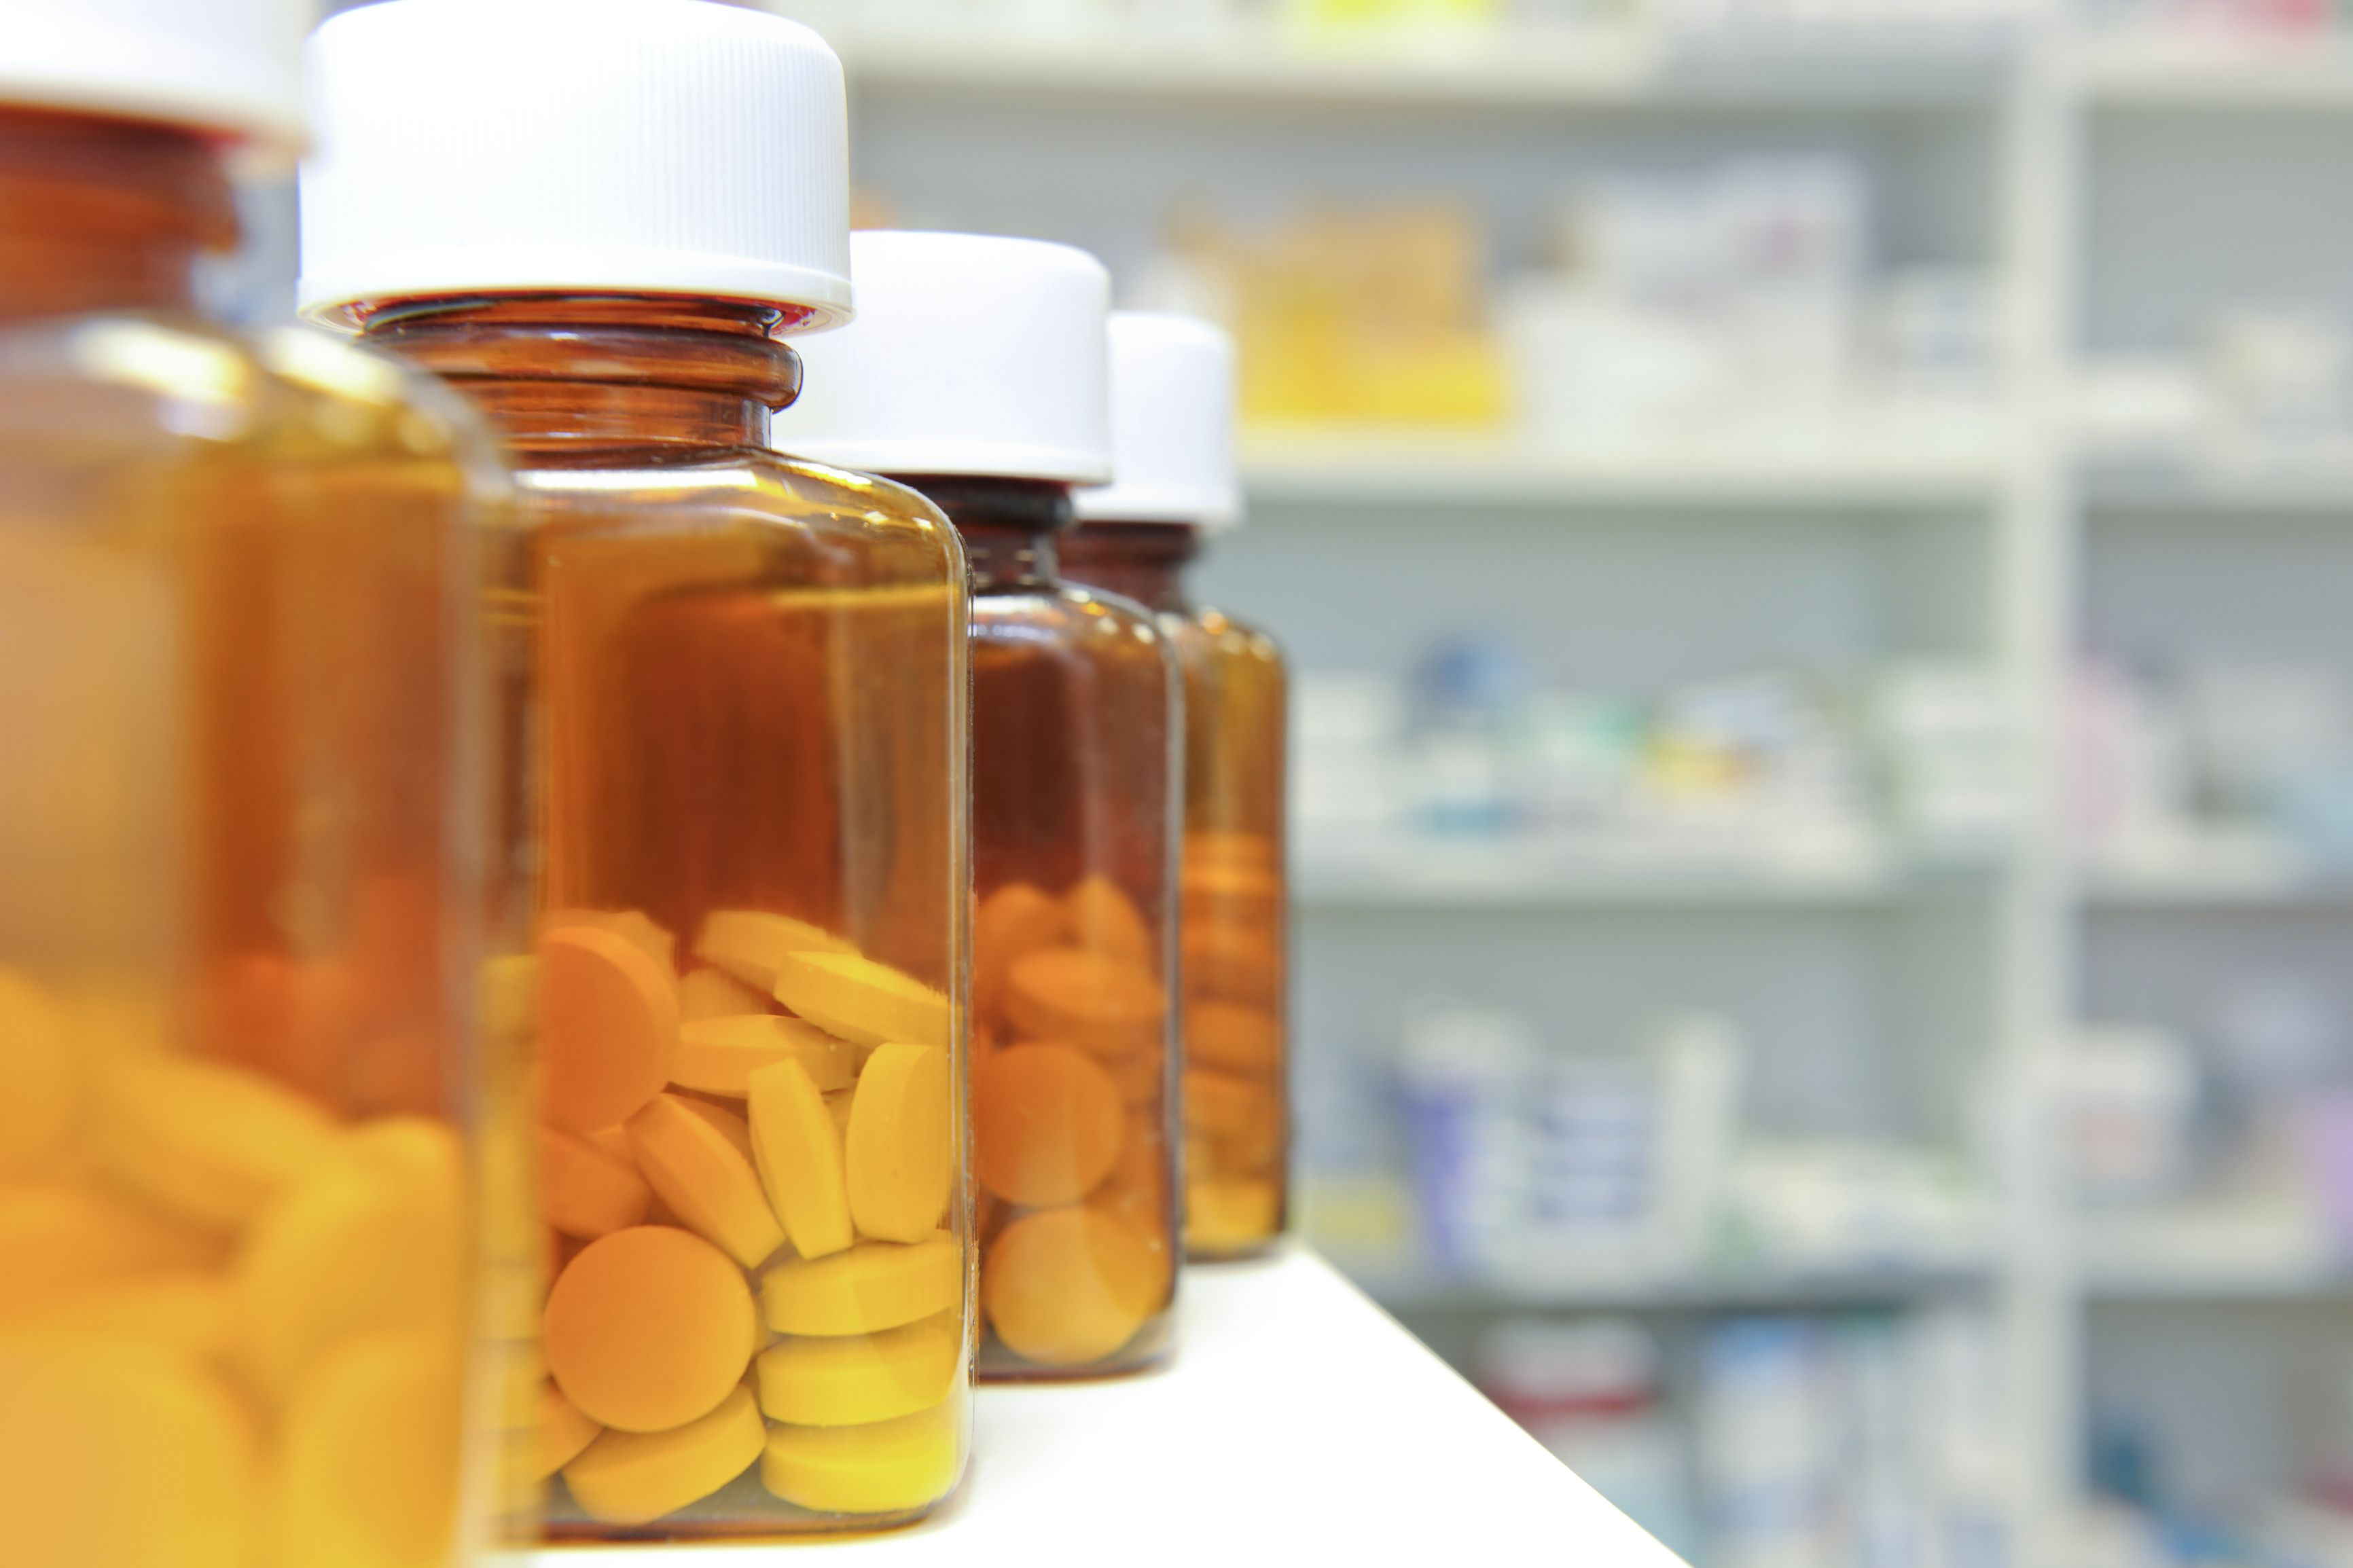 Visit us for all of your over the counter and pharmaceutical needs